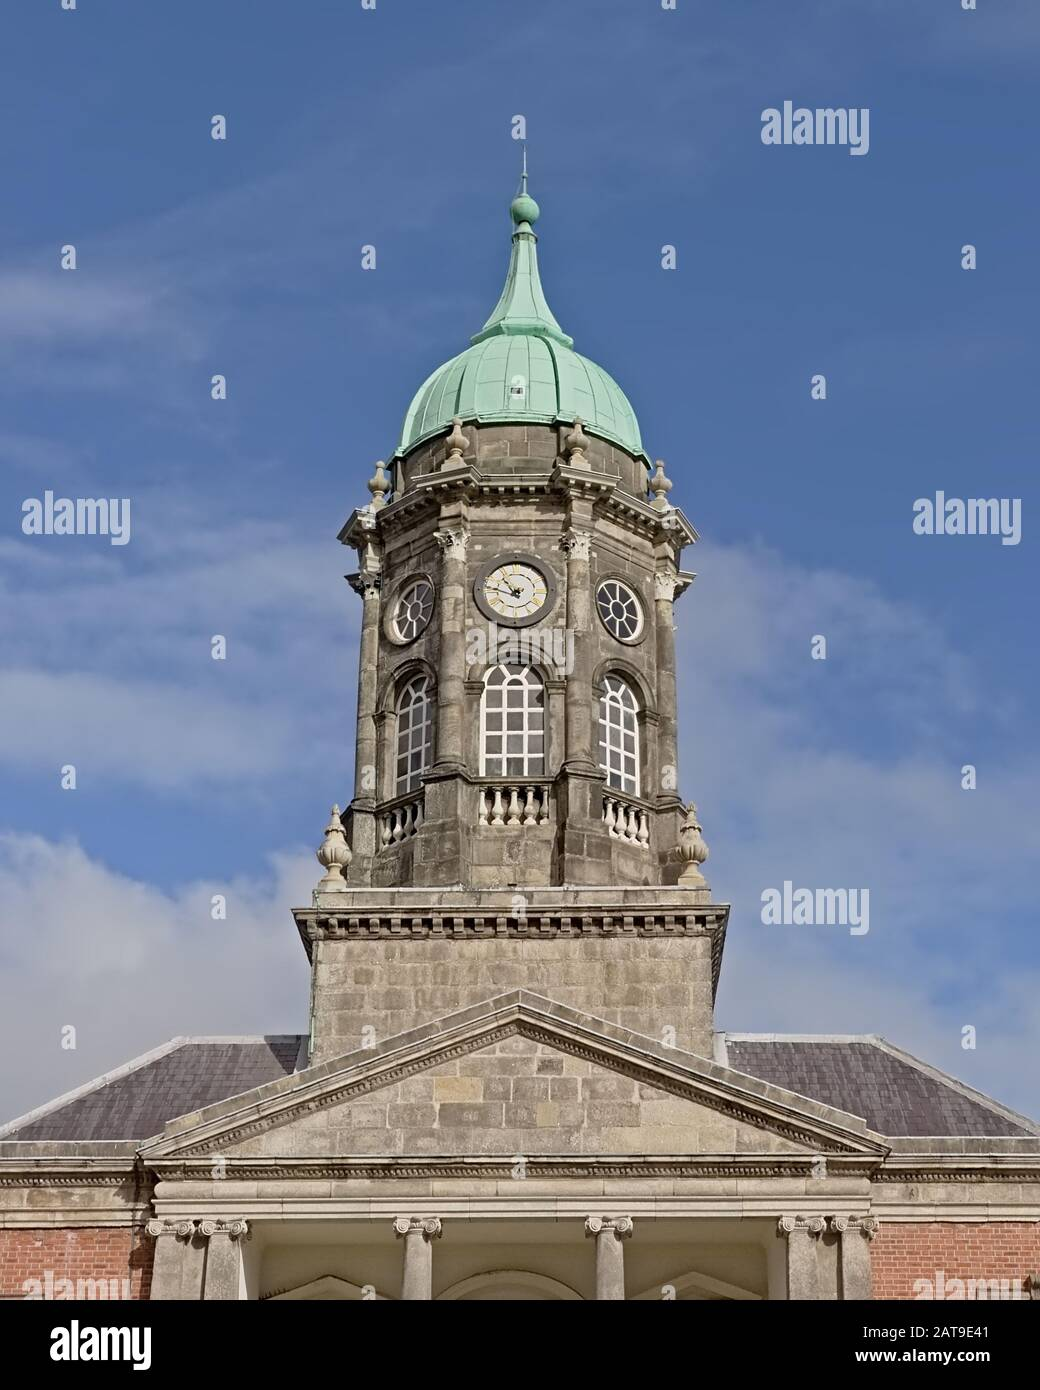 Bedford clock tower in Dublin Castle, Ireland on a sunny day with blue sky Stock Photo